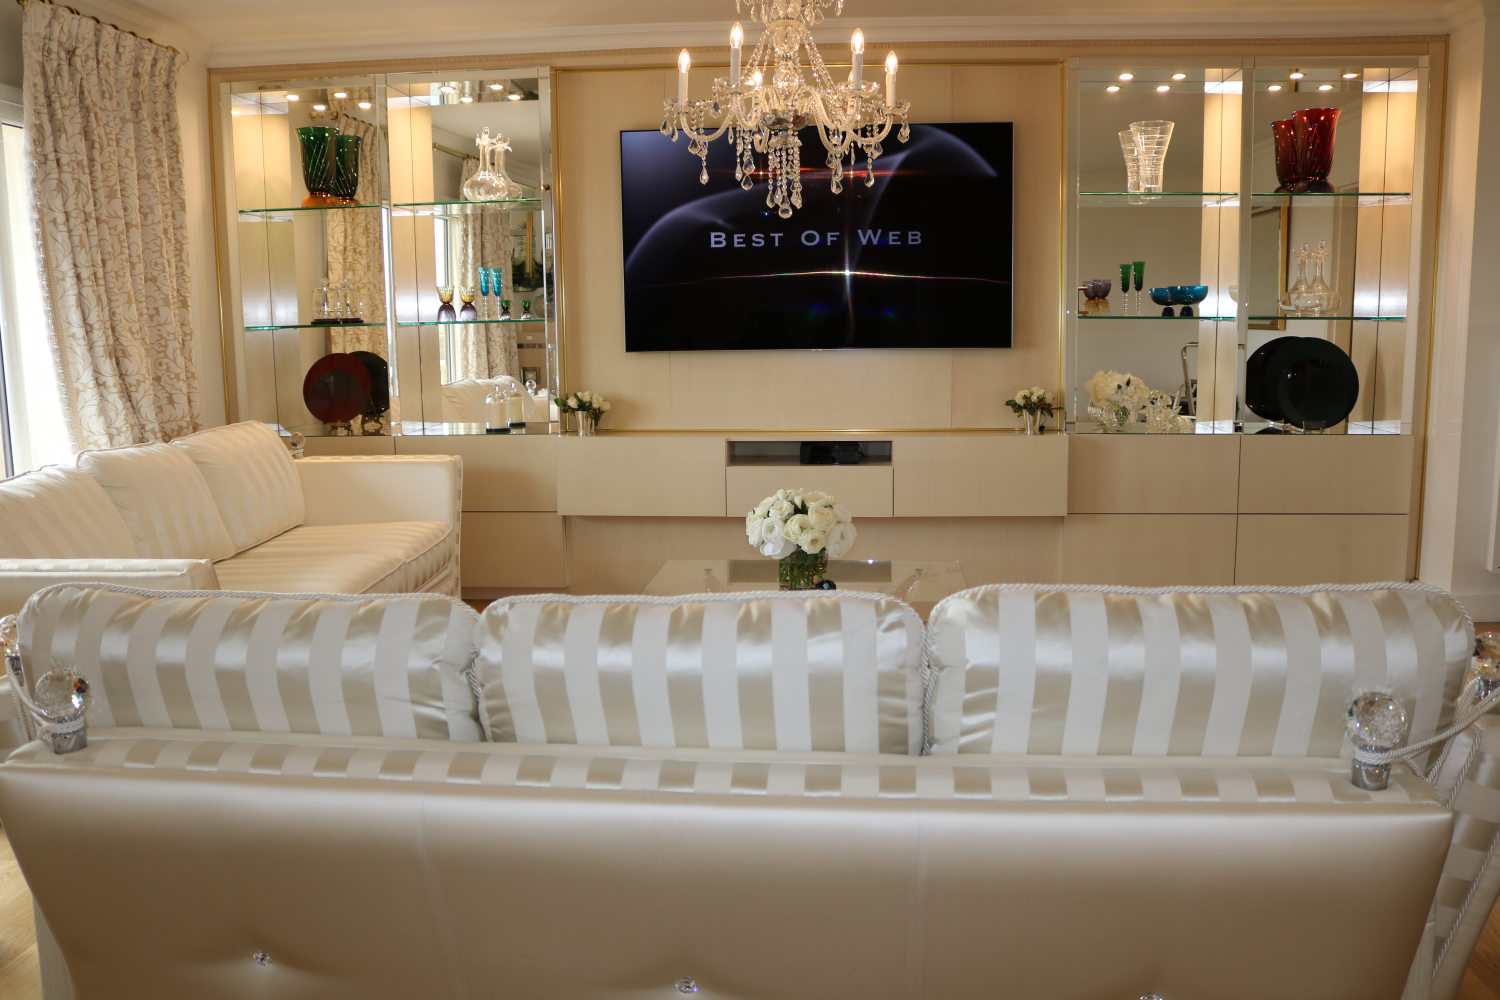 meuble de salon luxury wall unit for tv, Madélia-Mobilier de Luxe Paris